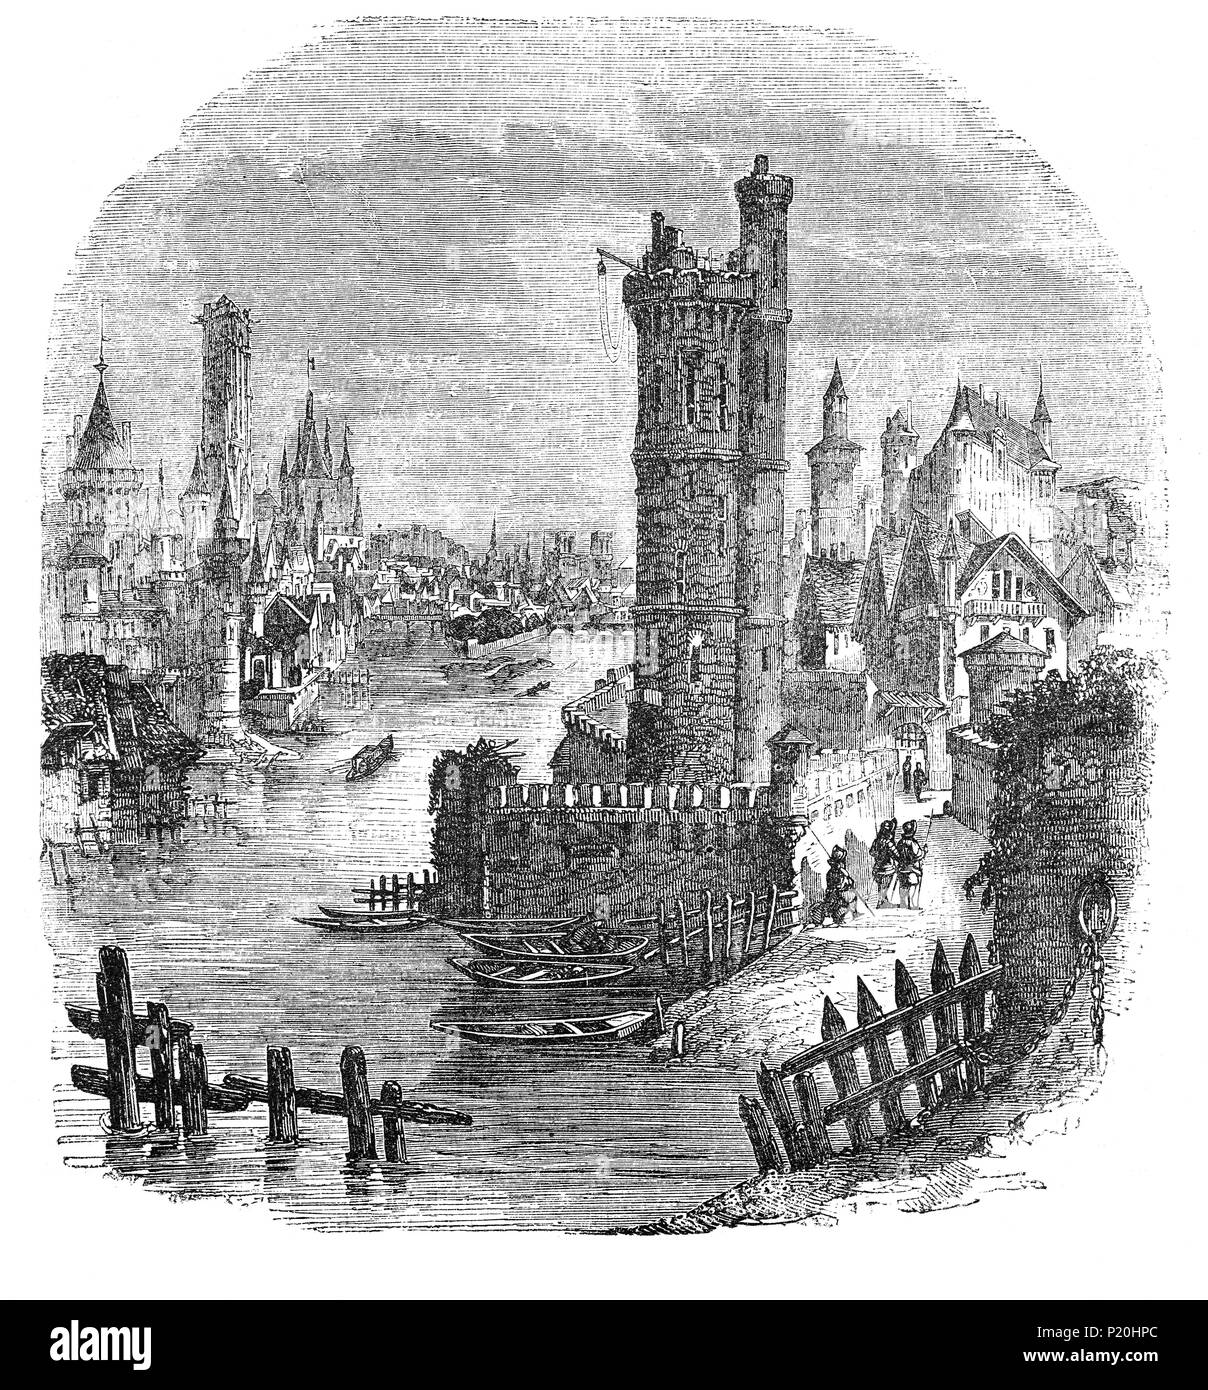 A 15th Century view of the River Seine as it flows through Paris, France during the time of the Cabochien revolt, an episode in the civil war between the Armagnacs and the Burgundians, it occurred during the 100 Years War between France and England Stock Photo